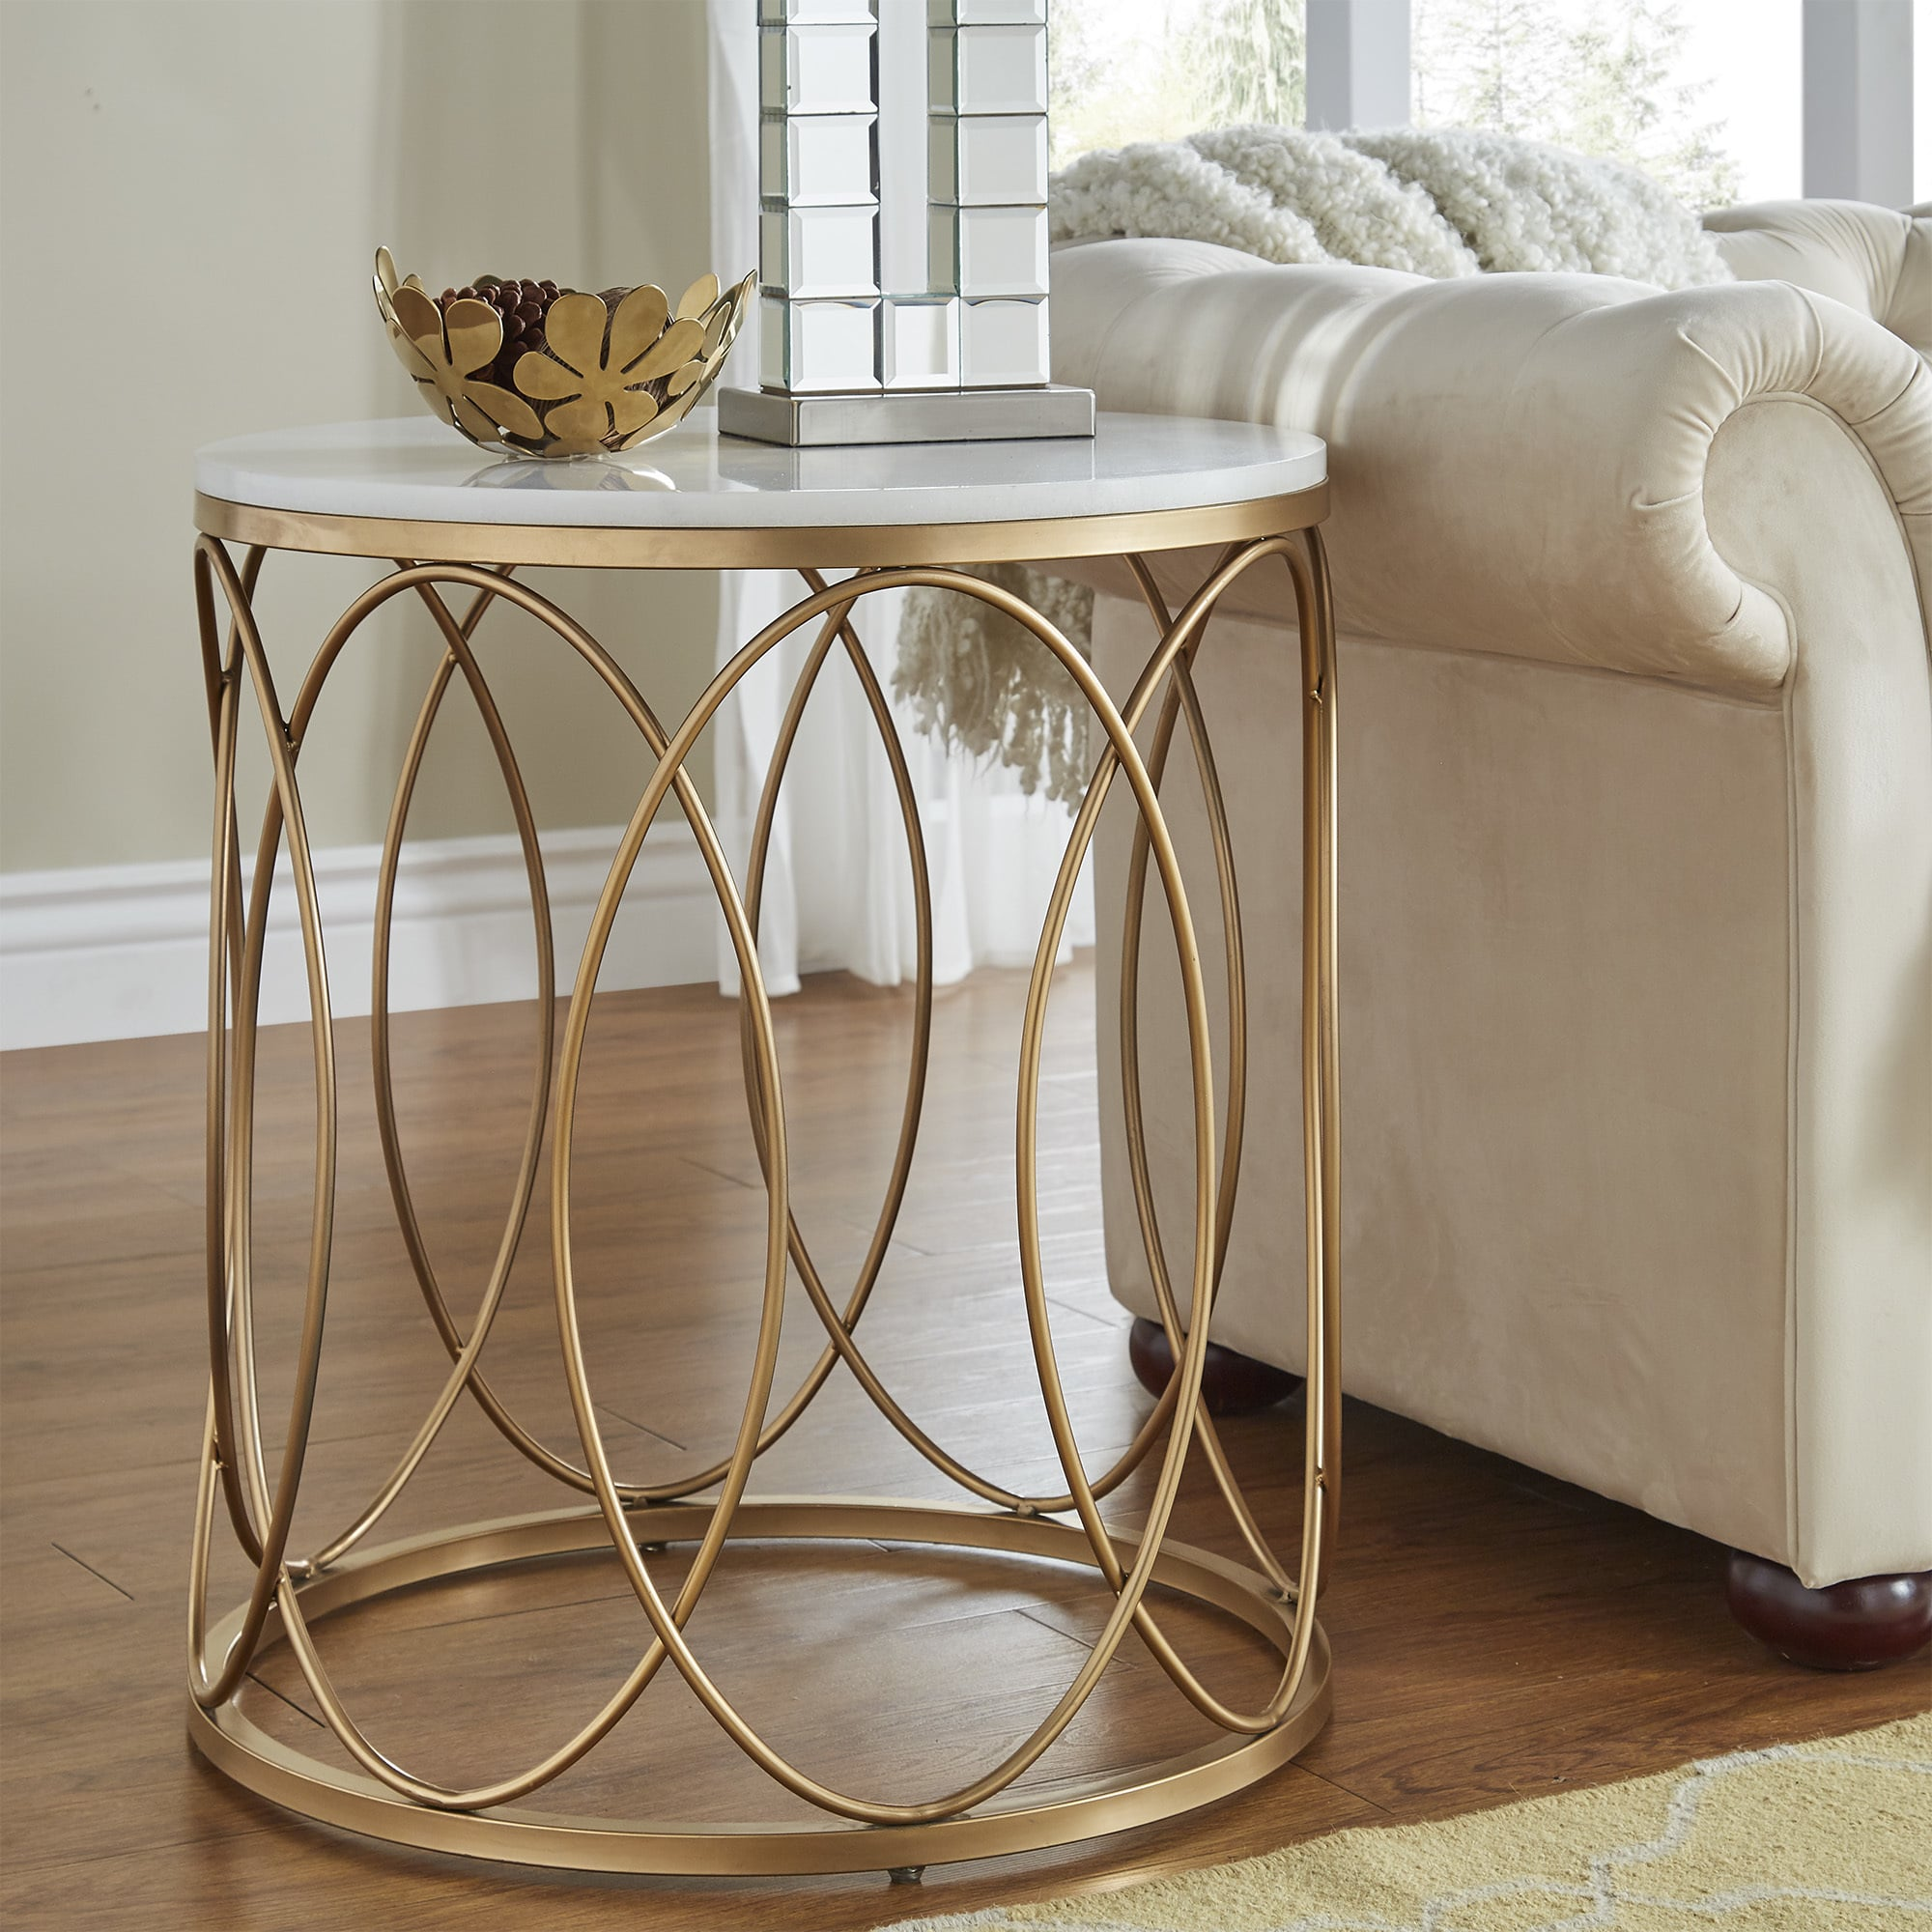 lynn round gold end table with marble top inspire bold accent free shipping today black metal glass ashley bedroom furniture island chairs antique and coffee rattan garden